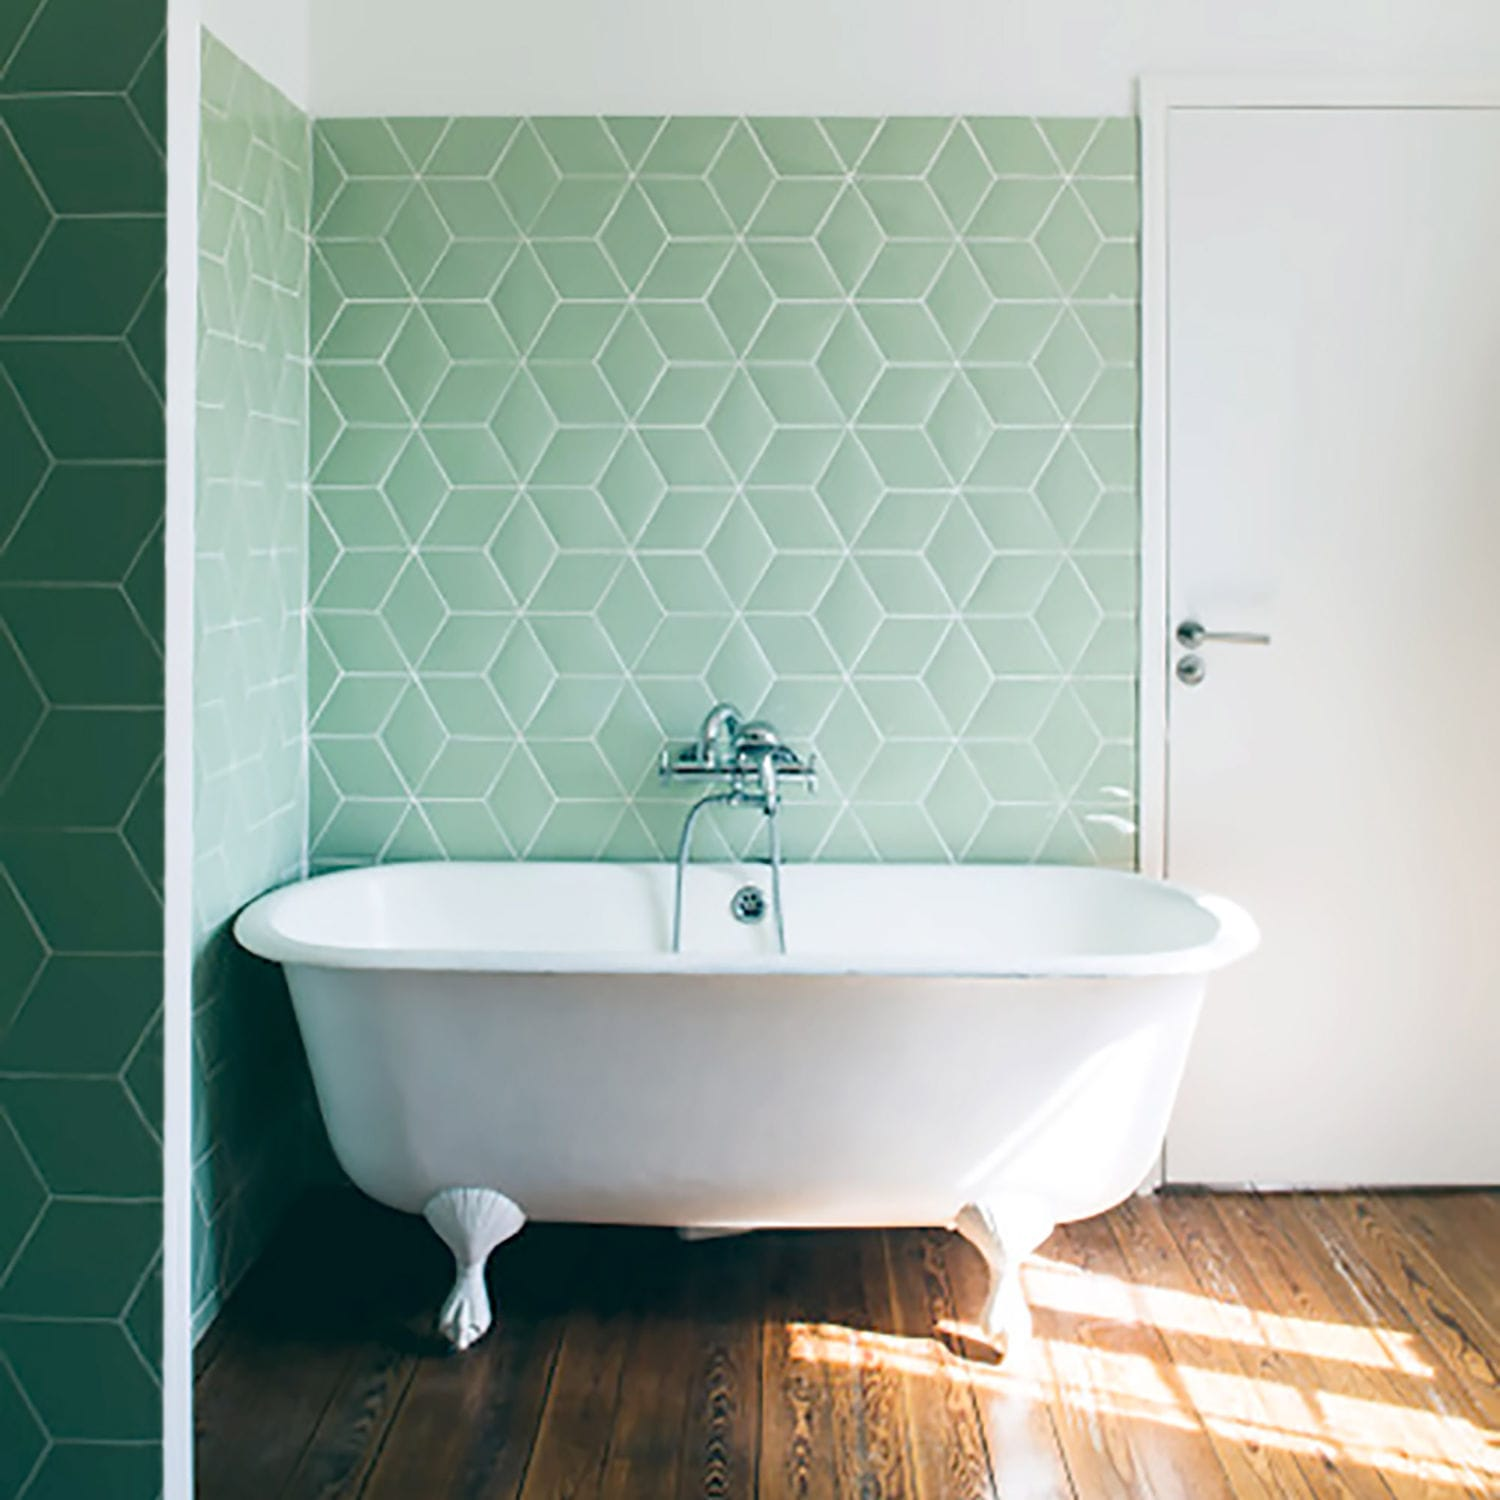 Amazing Ative Bathroom Tiles Elaboration - Bathtub Design Ideas ...